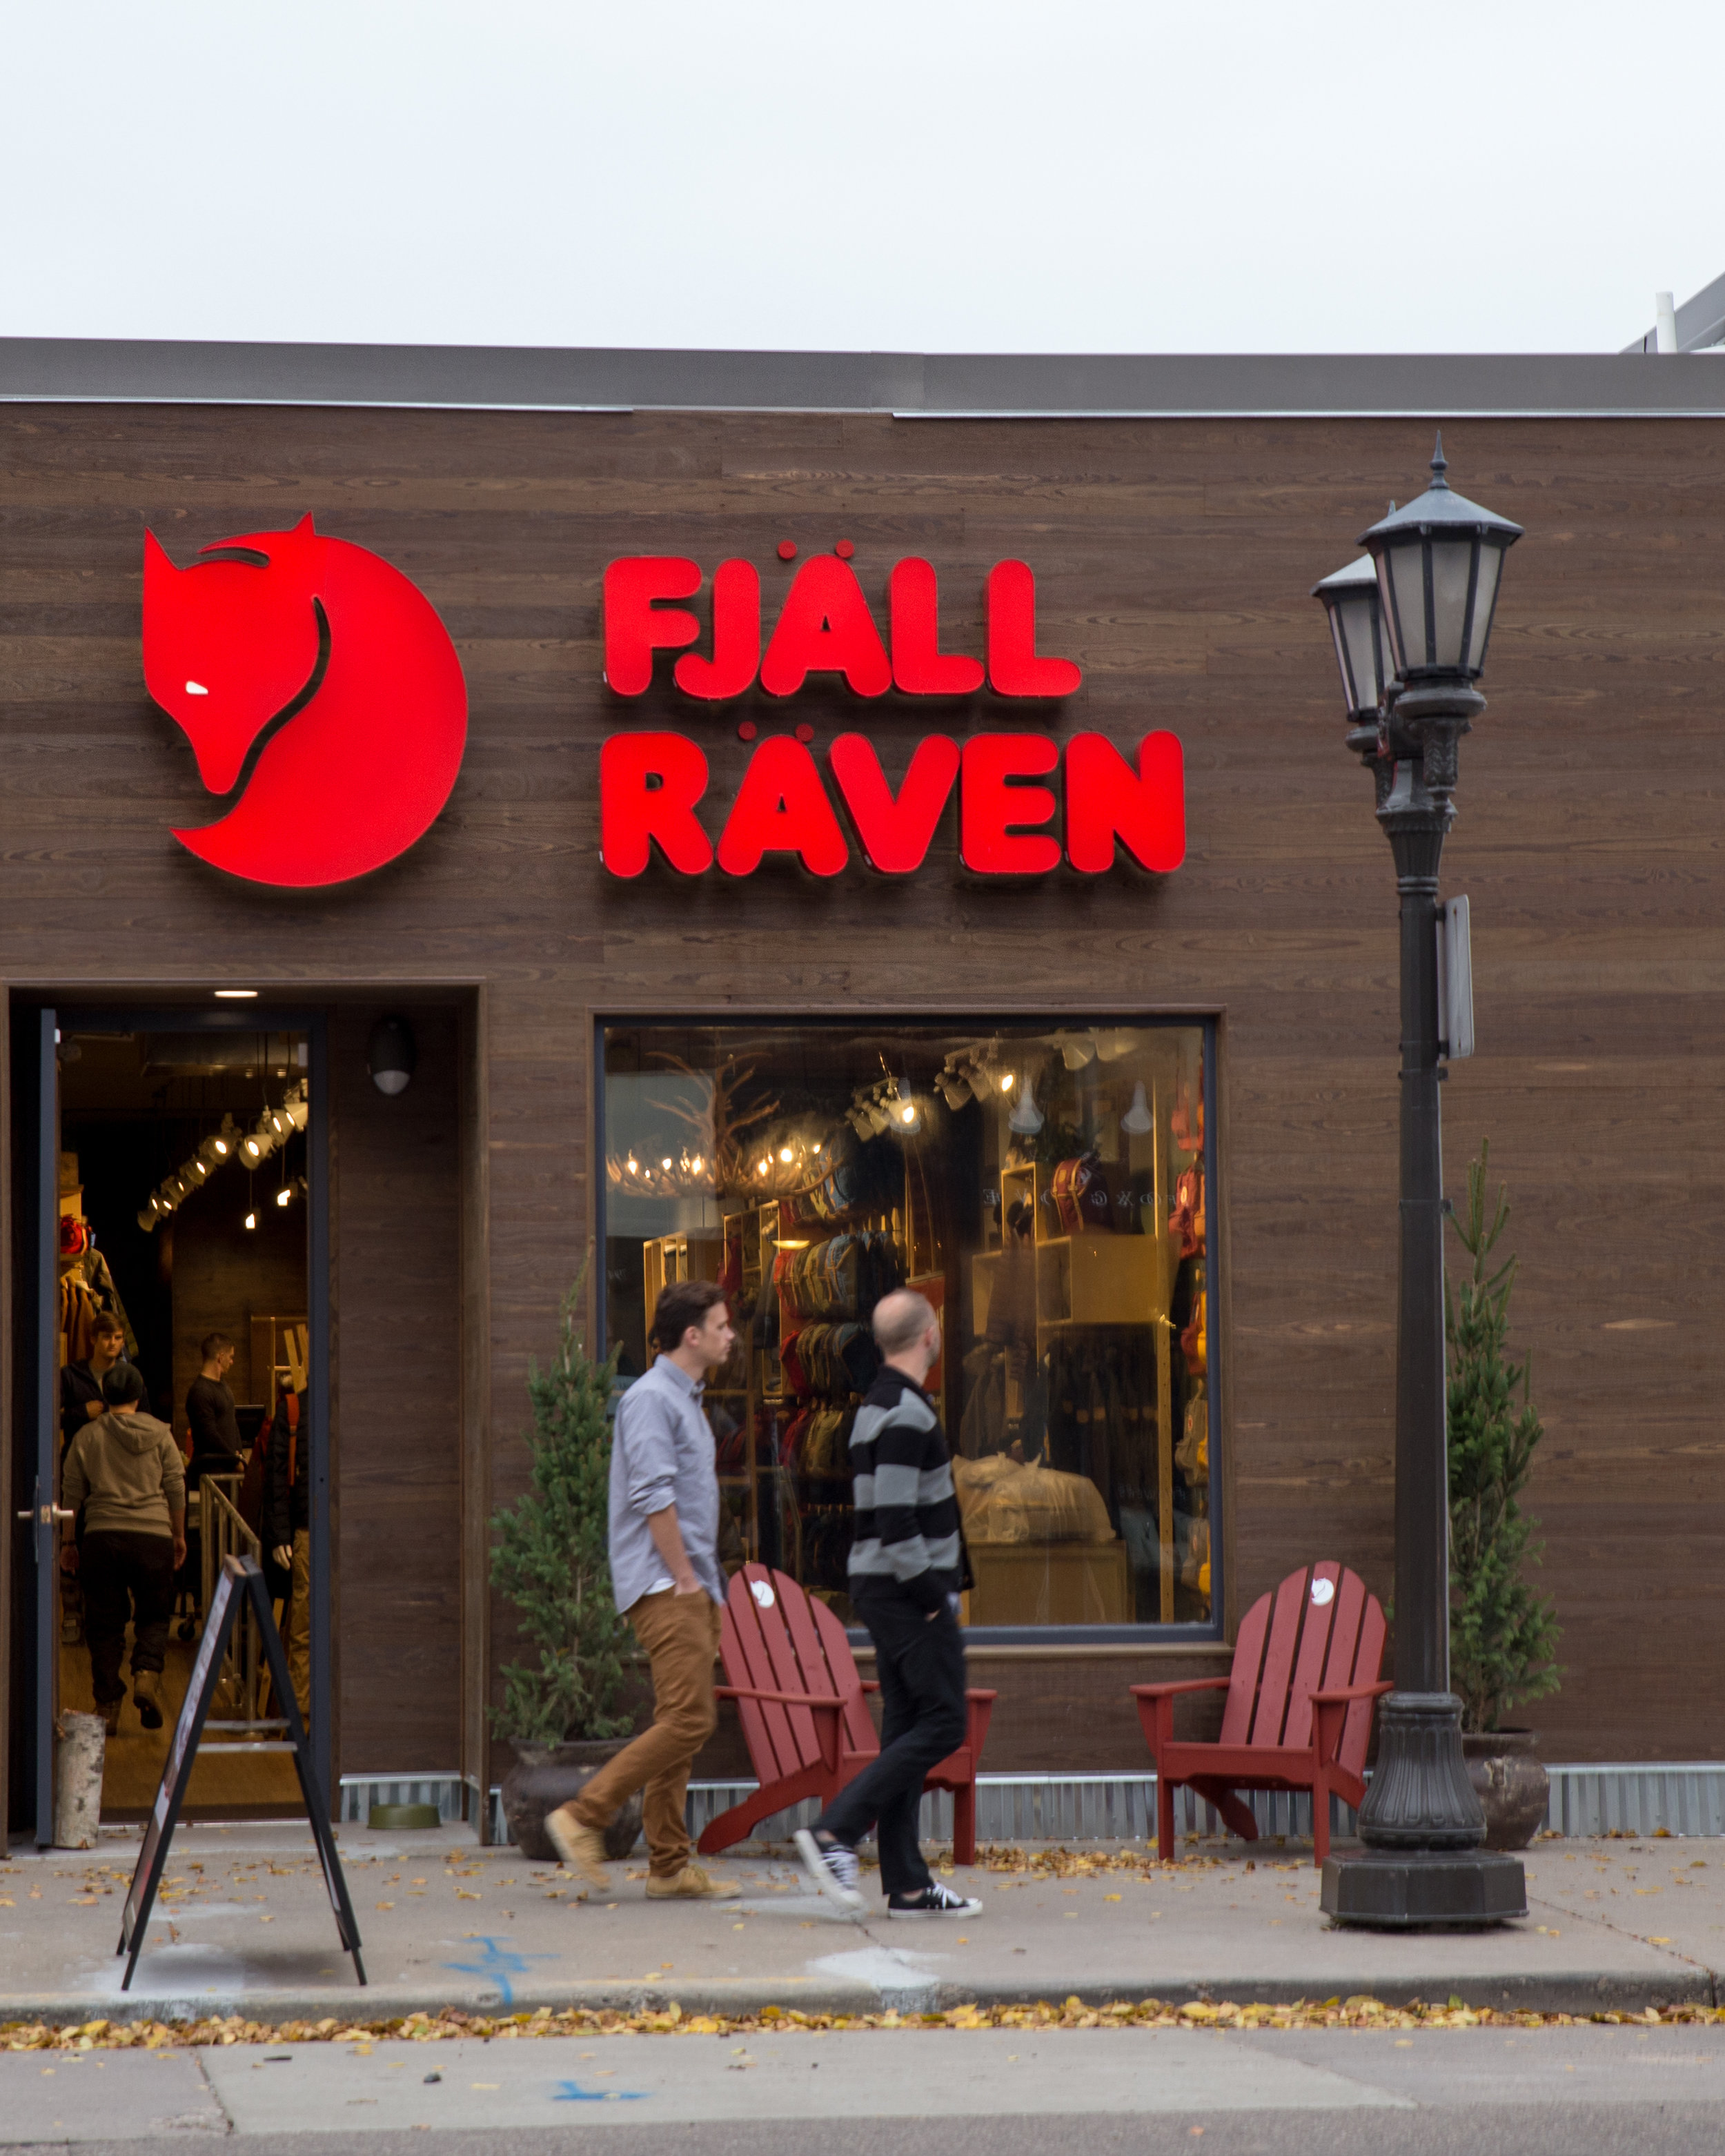 Fjallraven    Local event coverage, an art show and outdoor adventure in partnership with this beloved Swedish outdoor clothing company.